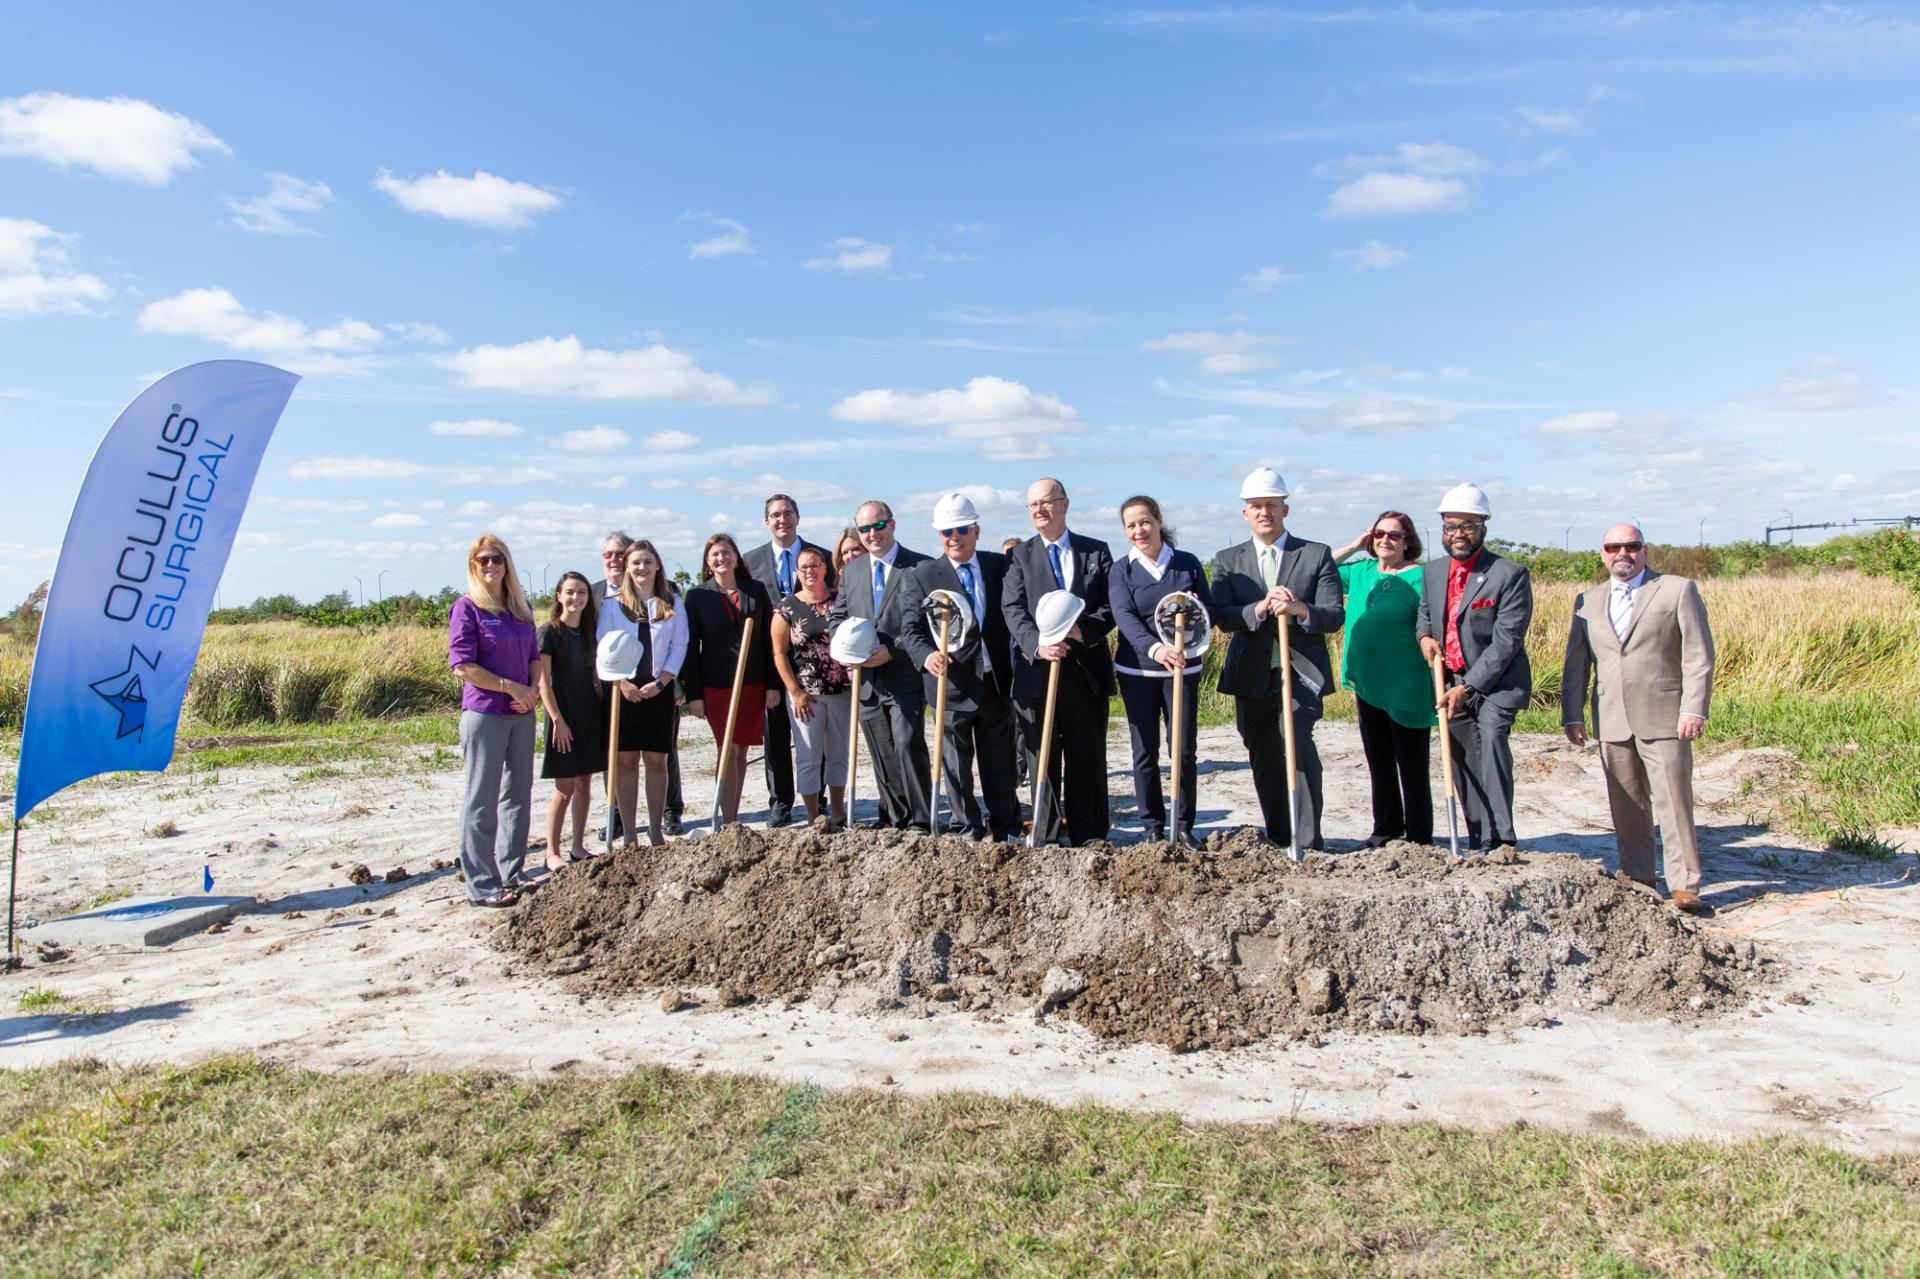 City county Oculus teams outside with shovels in ground